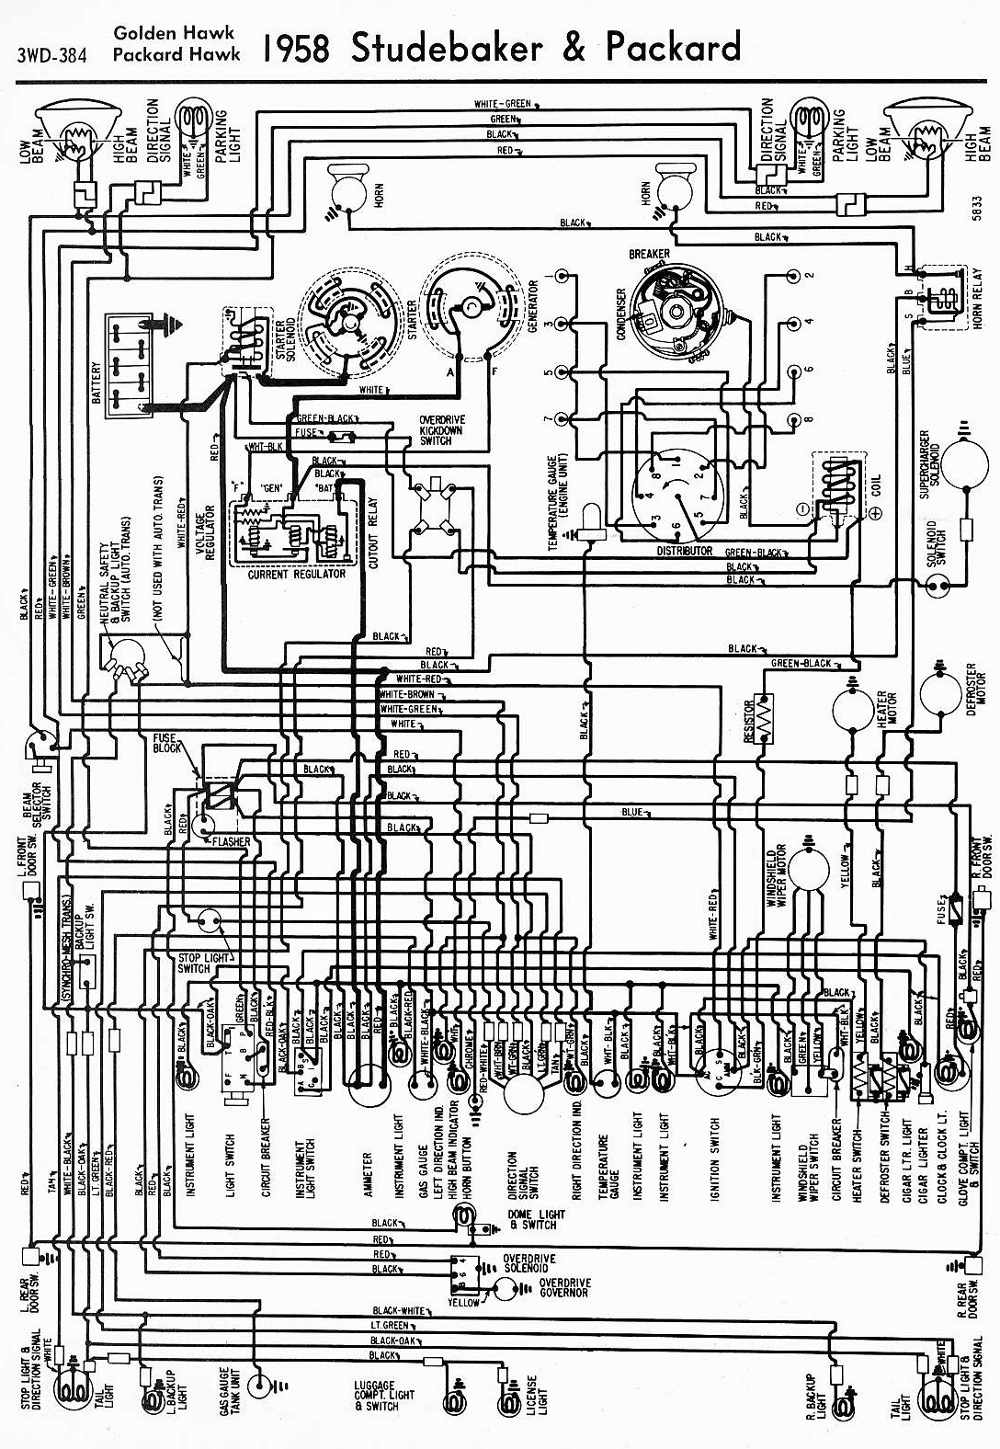 medium resolution of 1949 packard wiring diagram schematic diagrams 8730w hp laptop parts diagram wiring schematic for hp computers